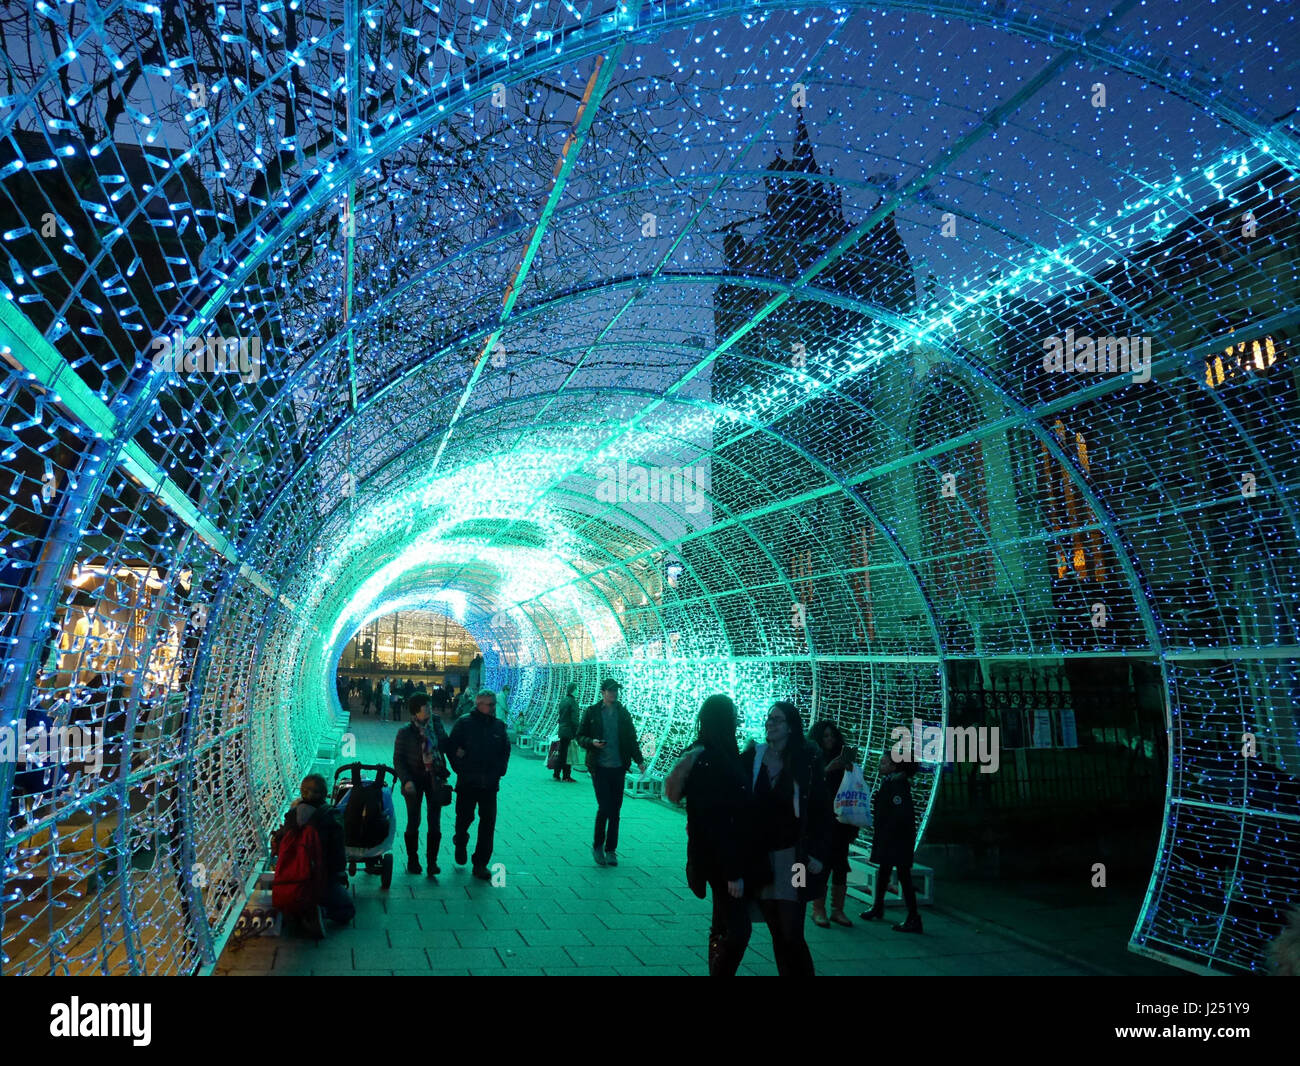 the spectacular tunnel of light part of the norwich city center christmas celebrations 2016